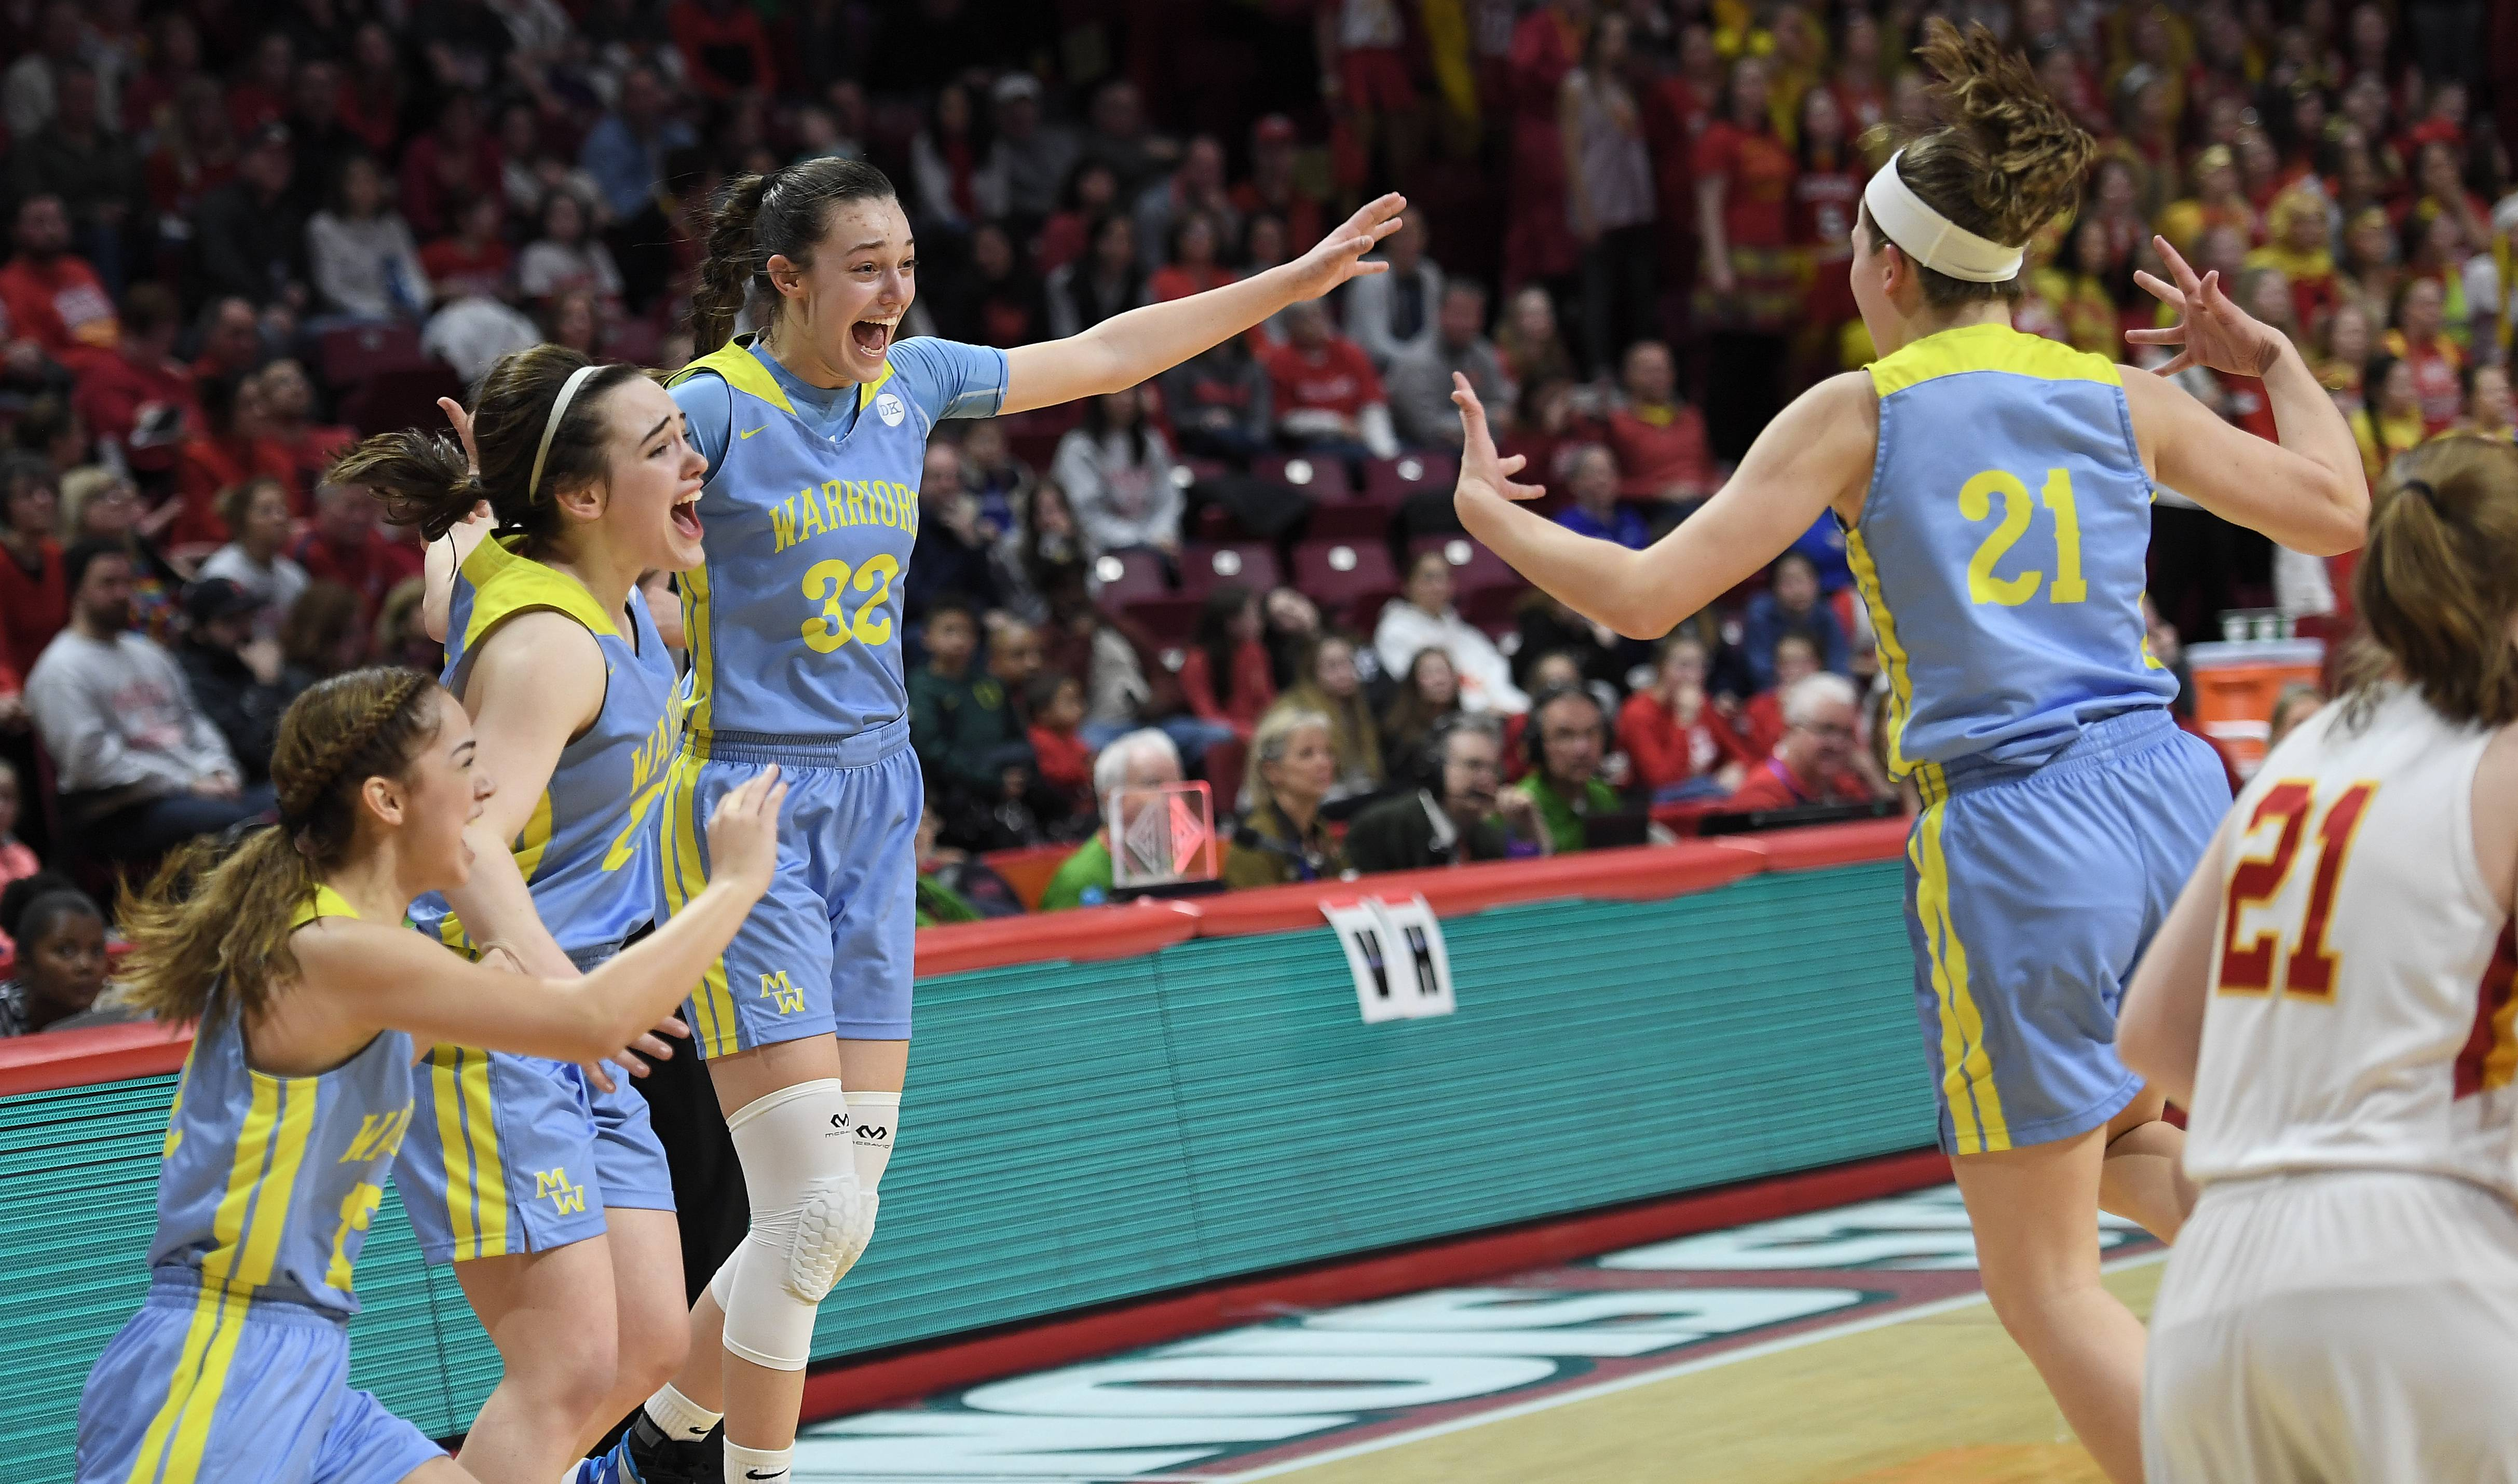 Maine West achieves perfection with state championship